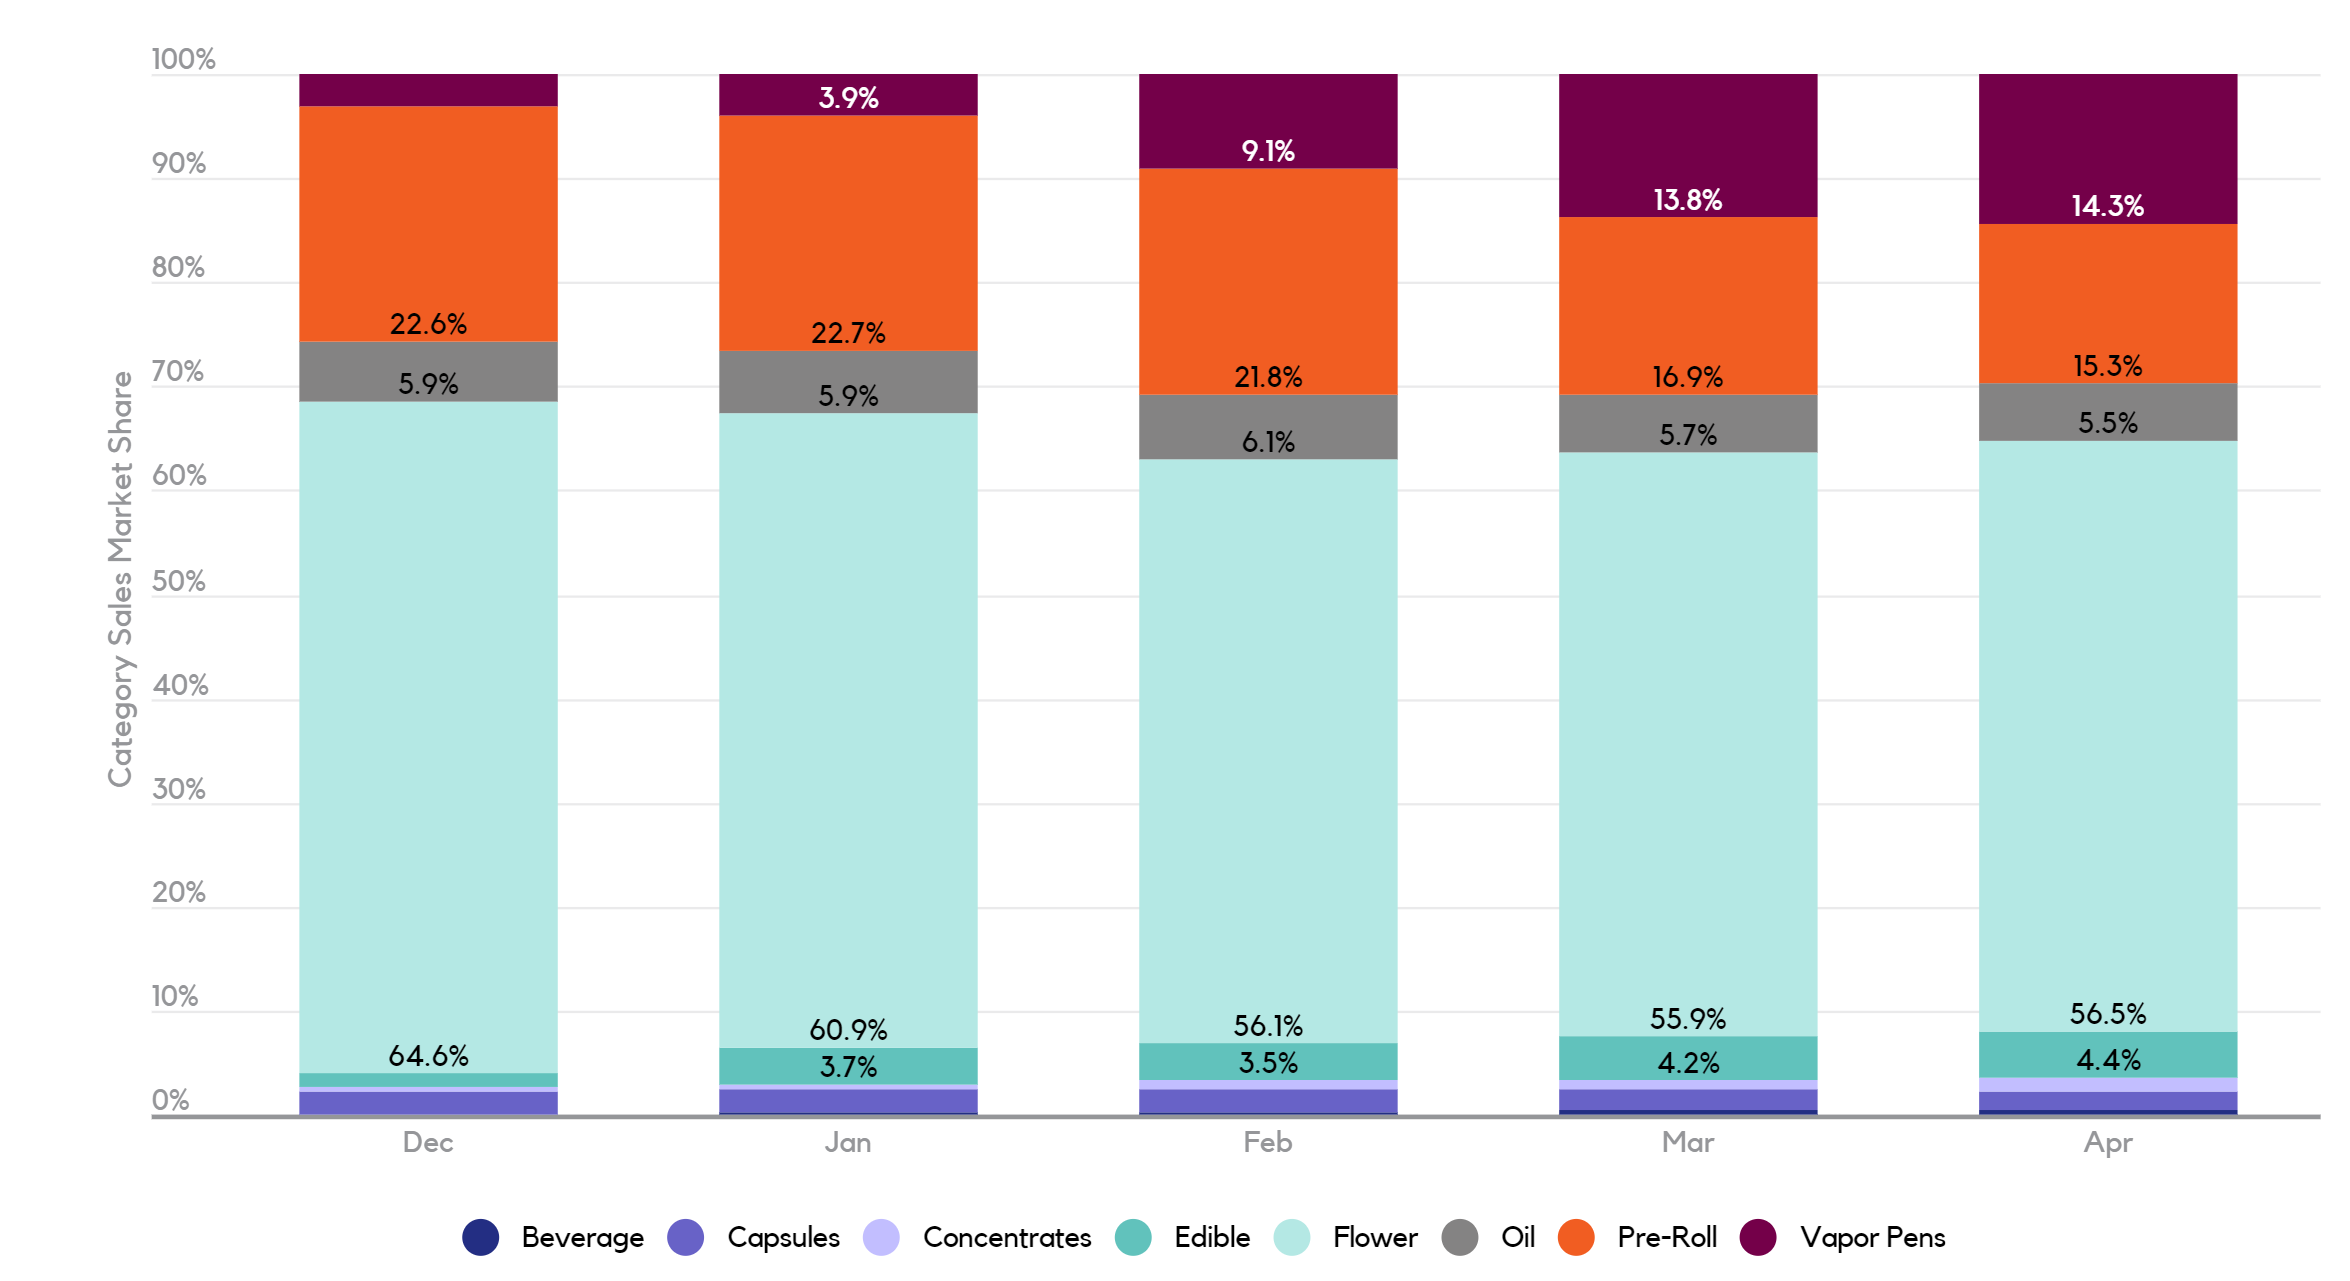 Cannabis category sales market share in Canada